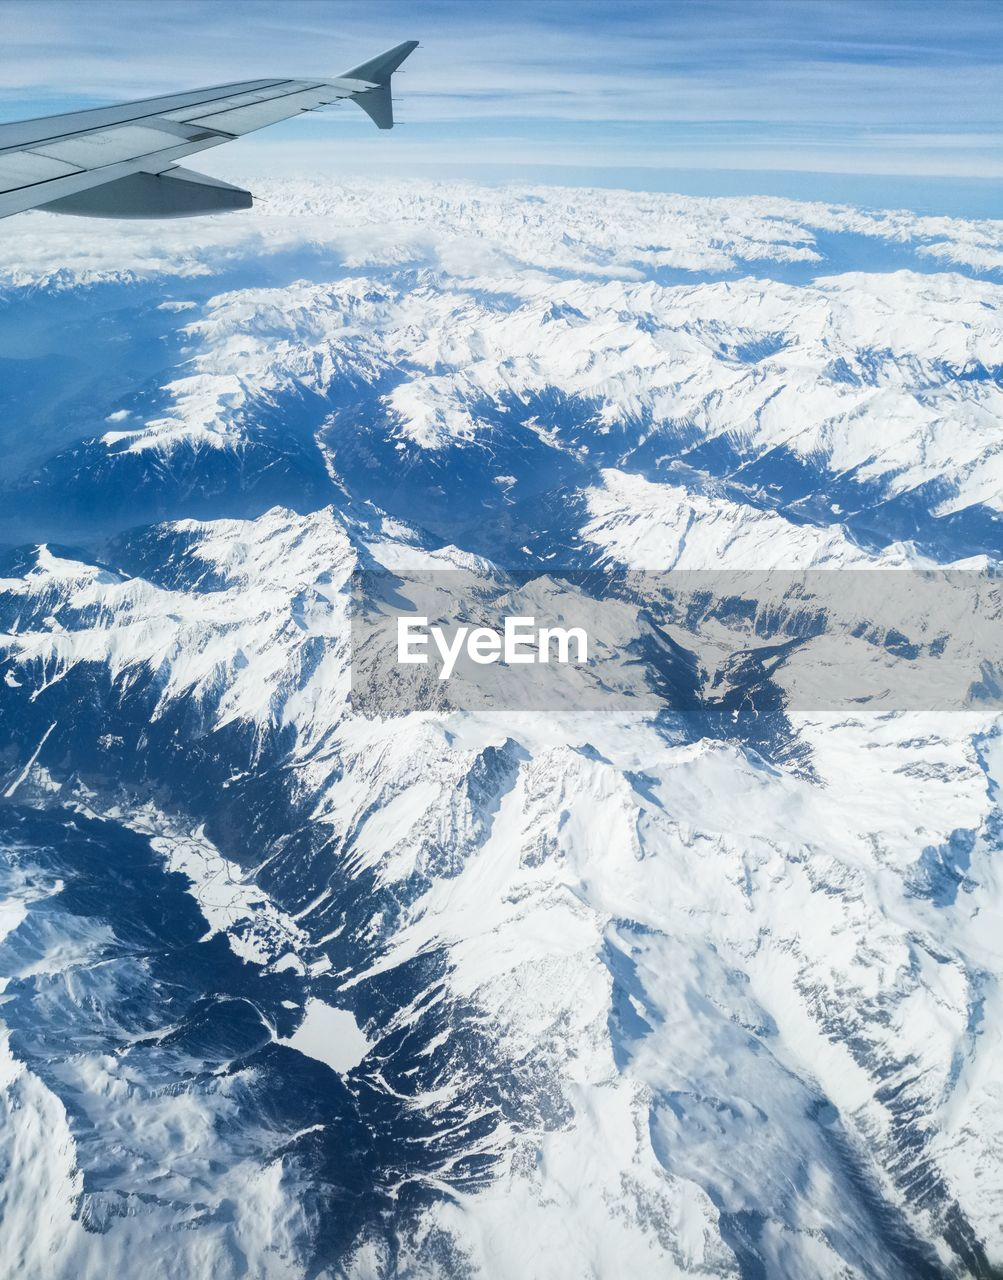 air vehicle, airplane, scenics - nature, flying, beauty in nature, aerial view, transportation, no people, aircraft wing, mode of transportation, travel, landscape, nature, day, cold temperature, sky, winter, tranquil scene, mountain, snow, snowcapped mountain, outdoors, aerospace industry